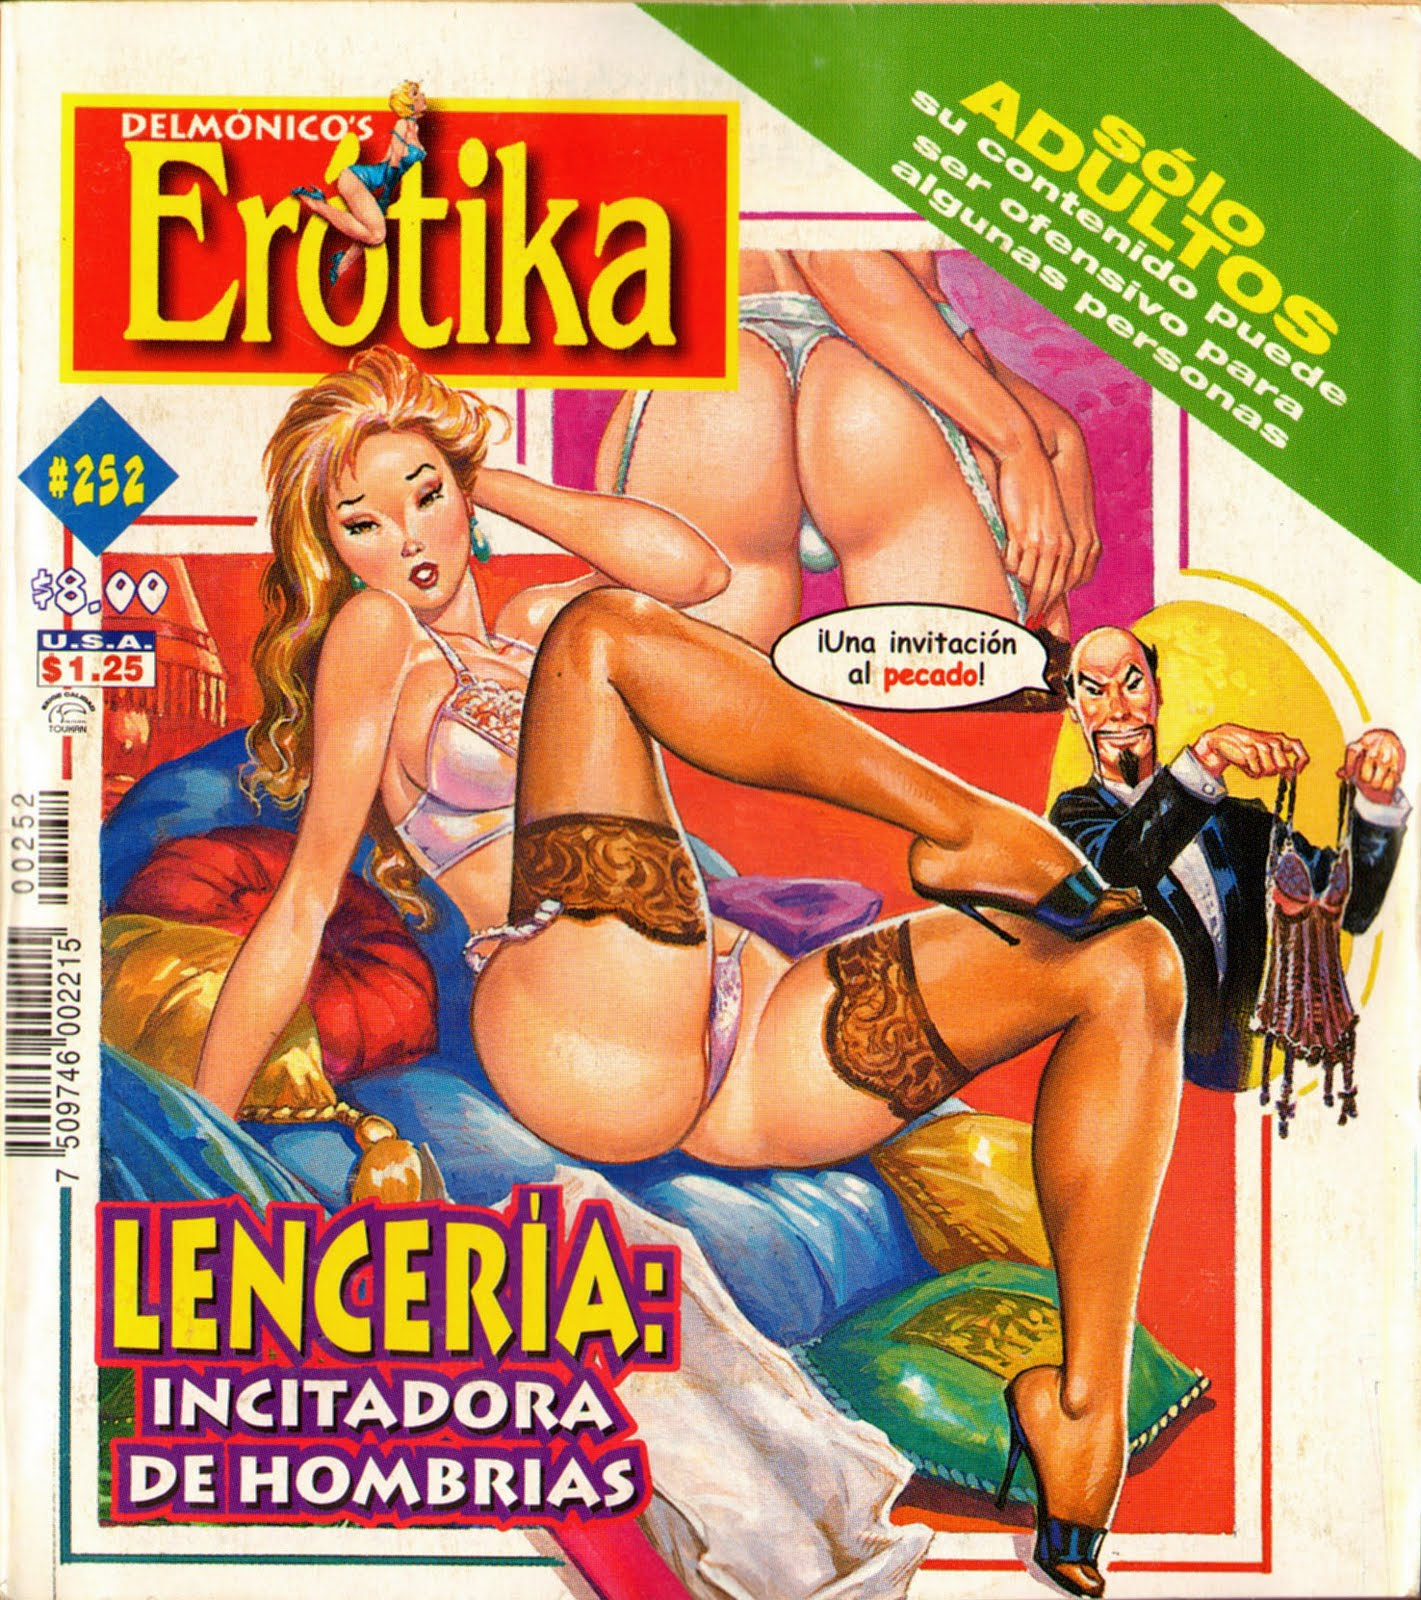 Mexican Adult Comics. Visit Historietas Perversas for more.